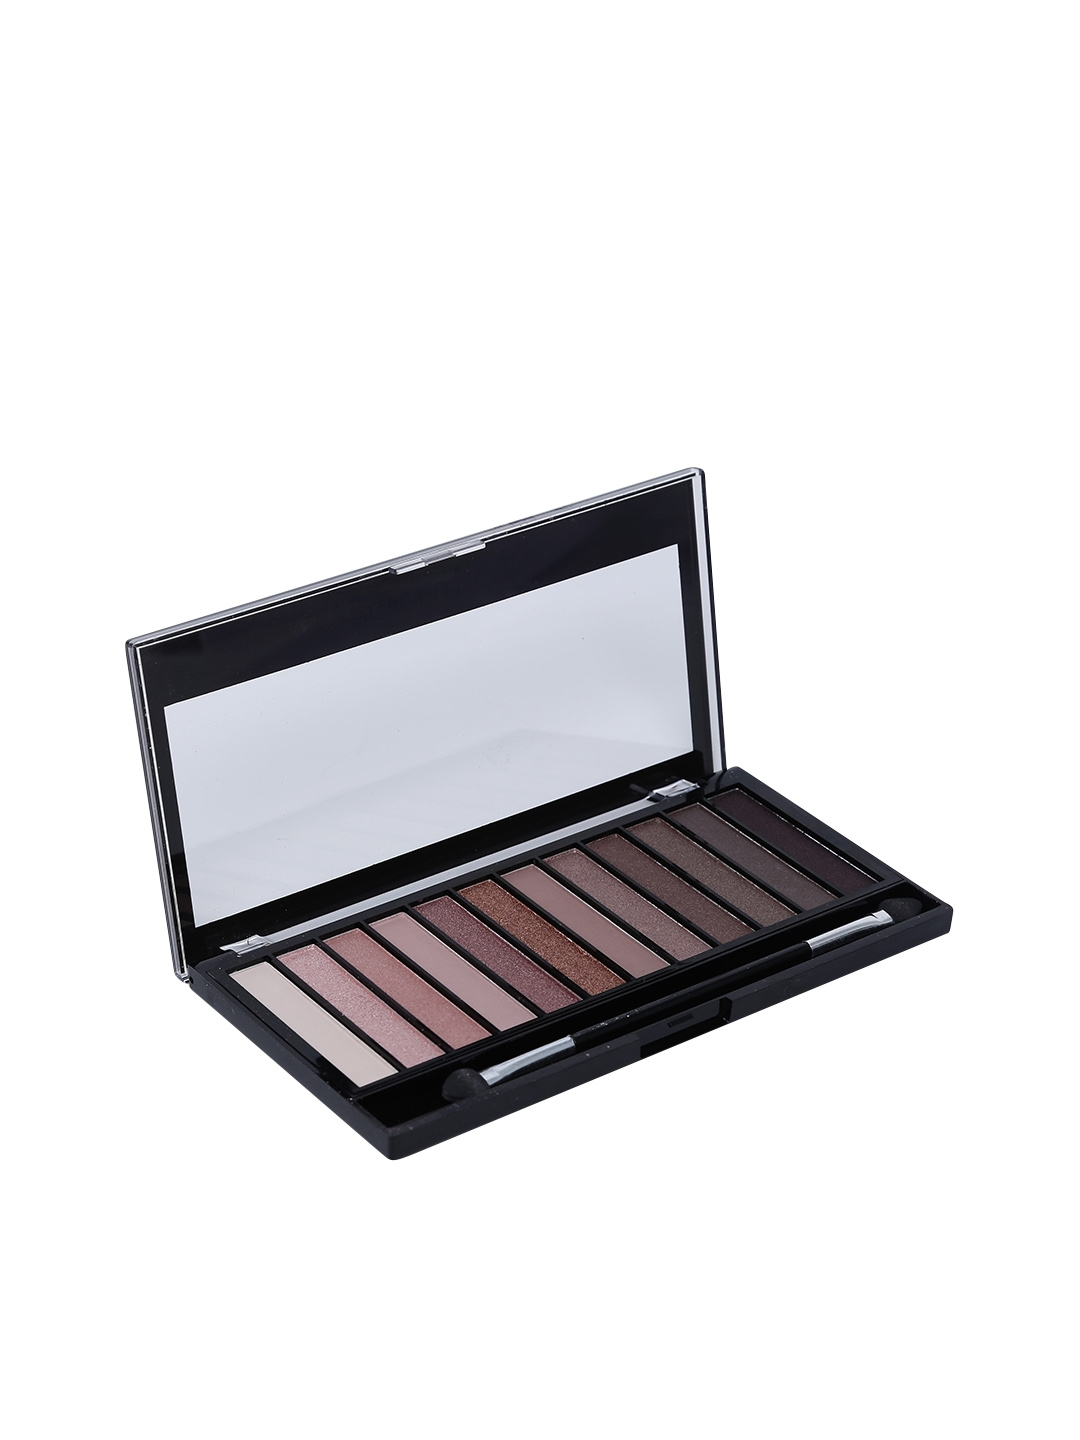 Makeup Revolution London Redemption Palette Eyeshadow   Iconic 3 14 g